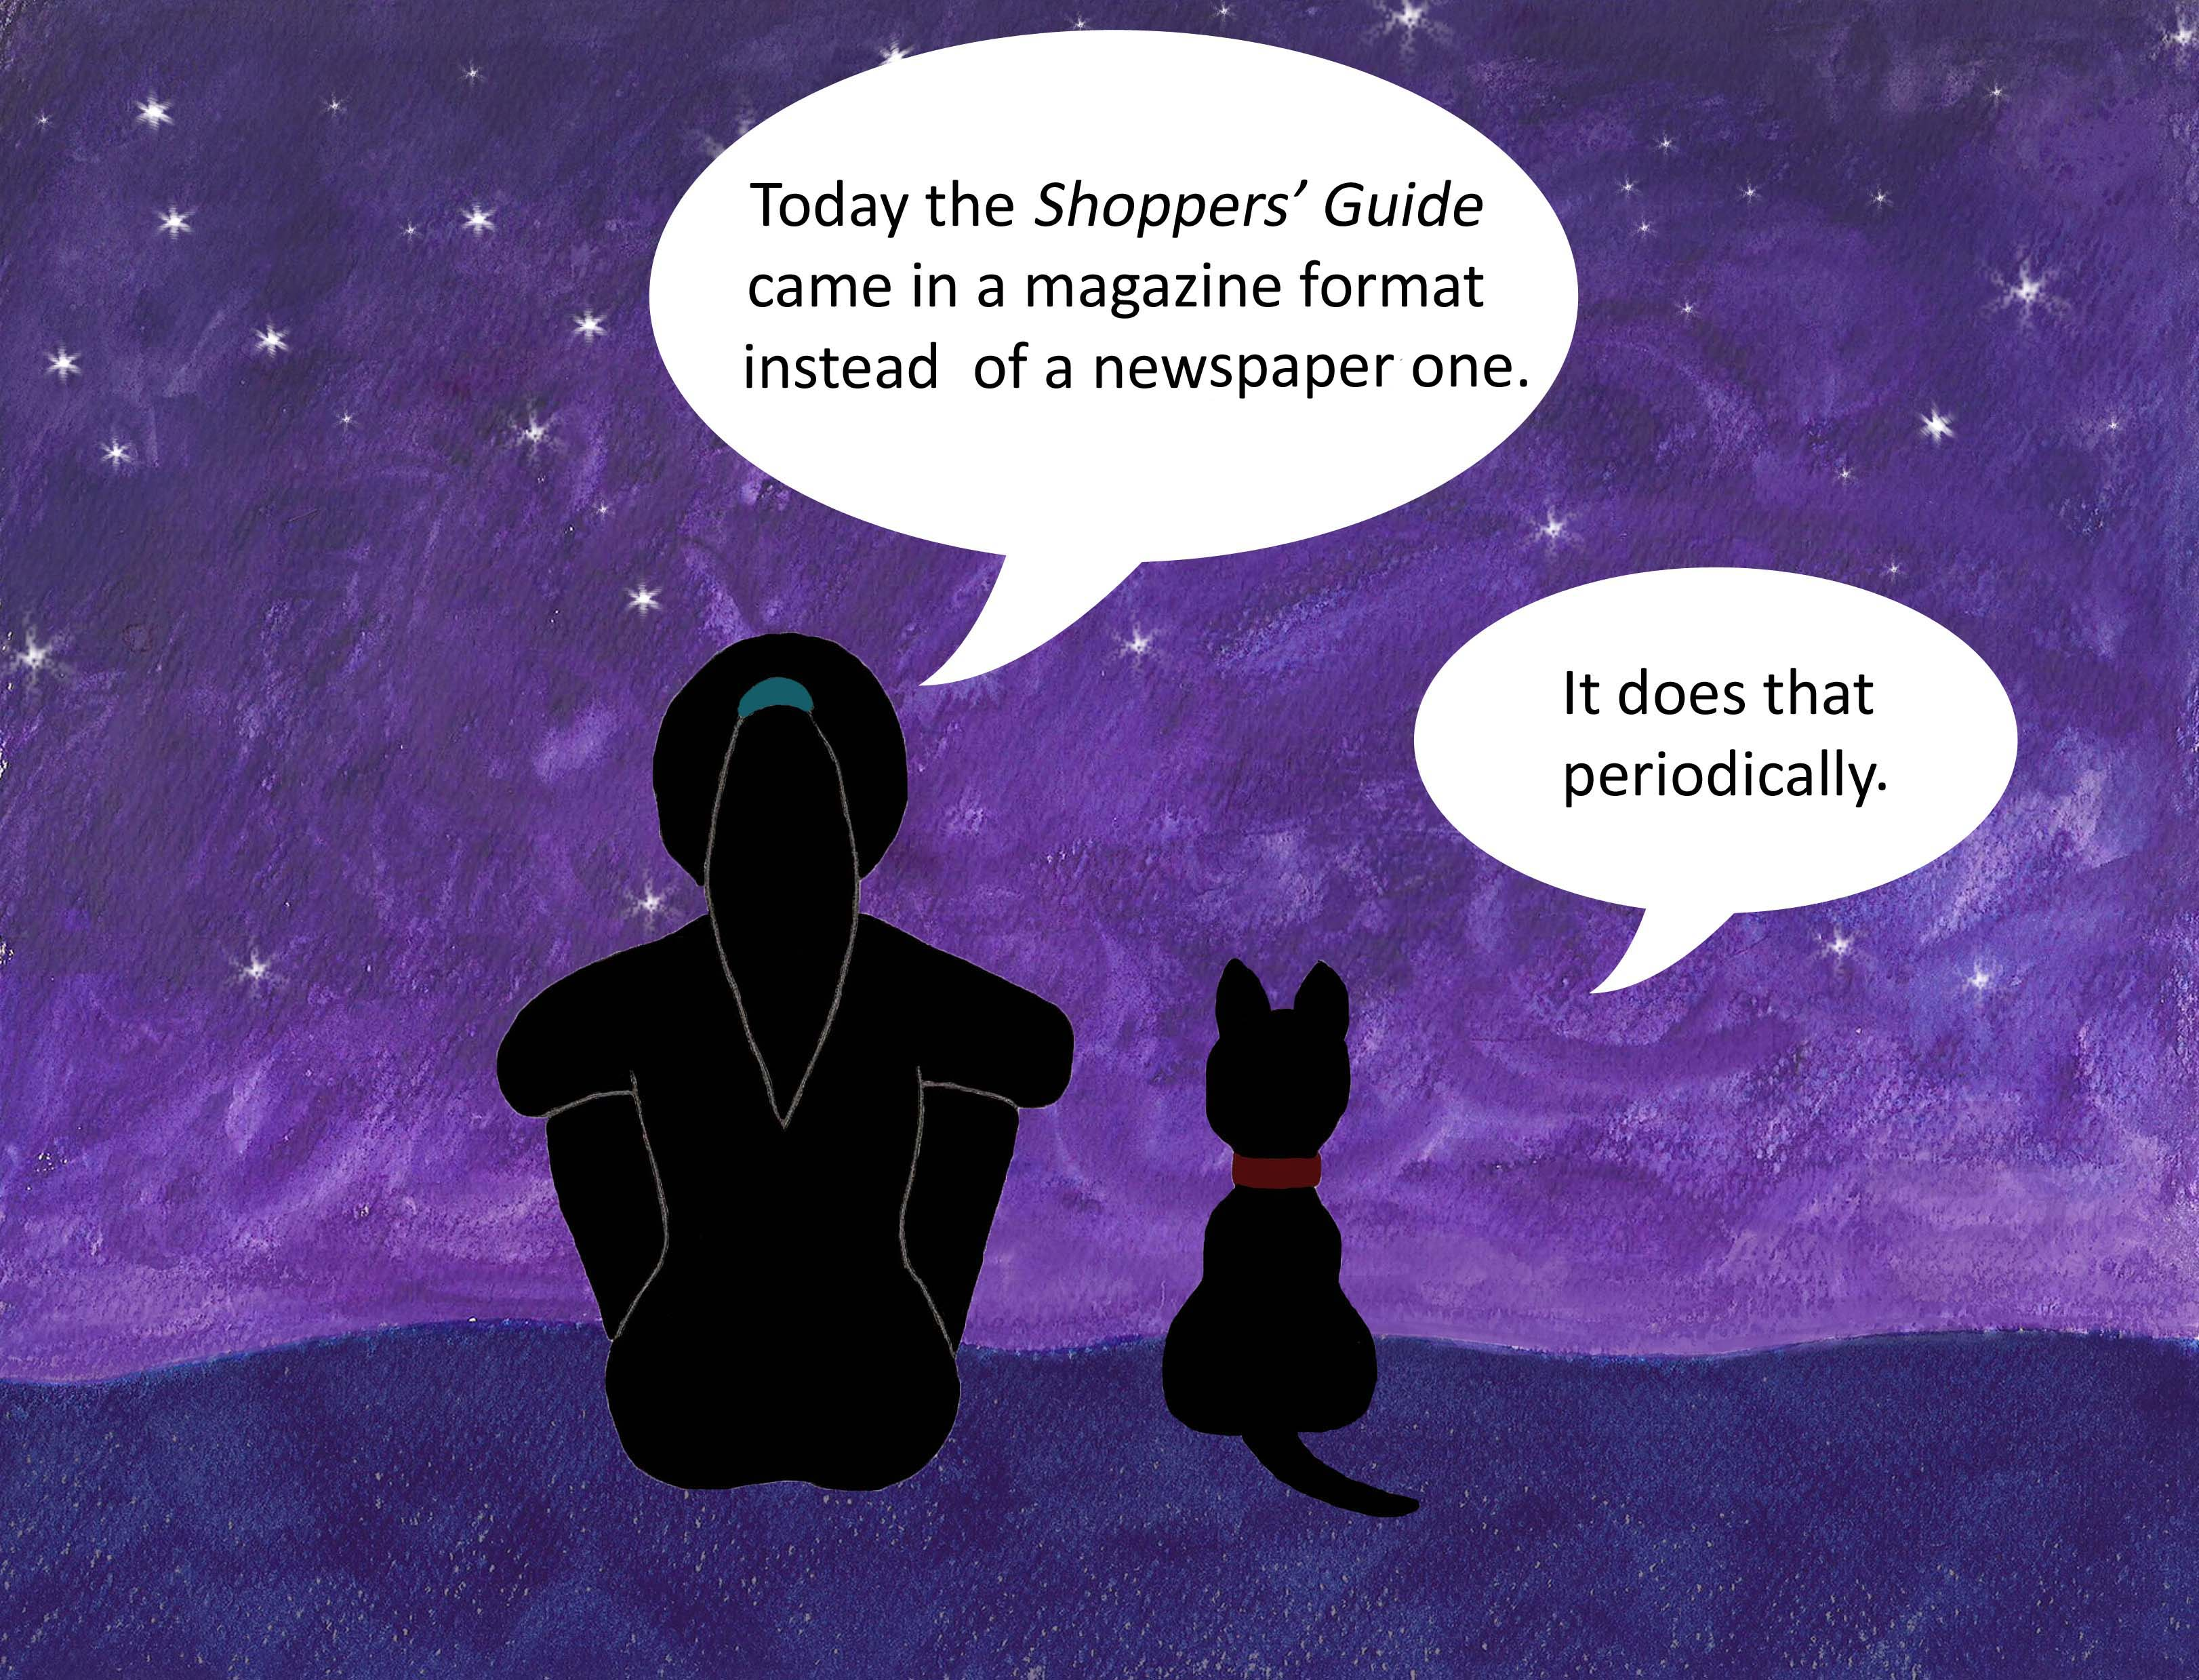 Today the Shoppers' Guide came in a magazine format instead of a newspaper one. It does that periodically.